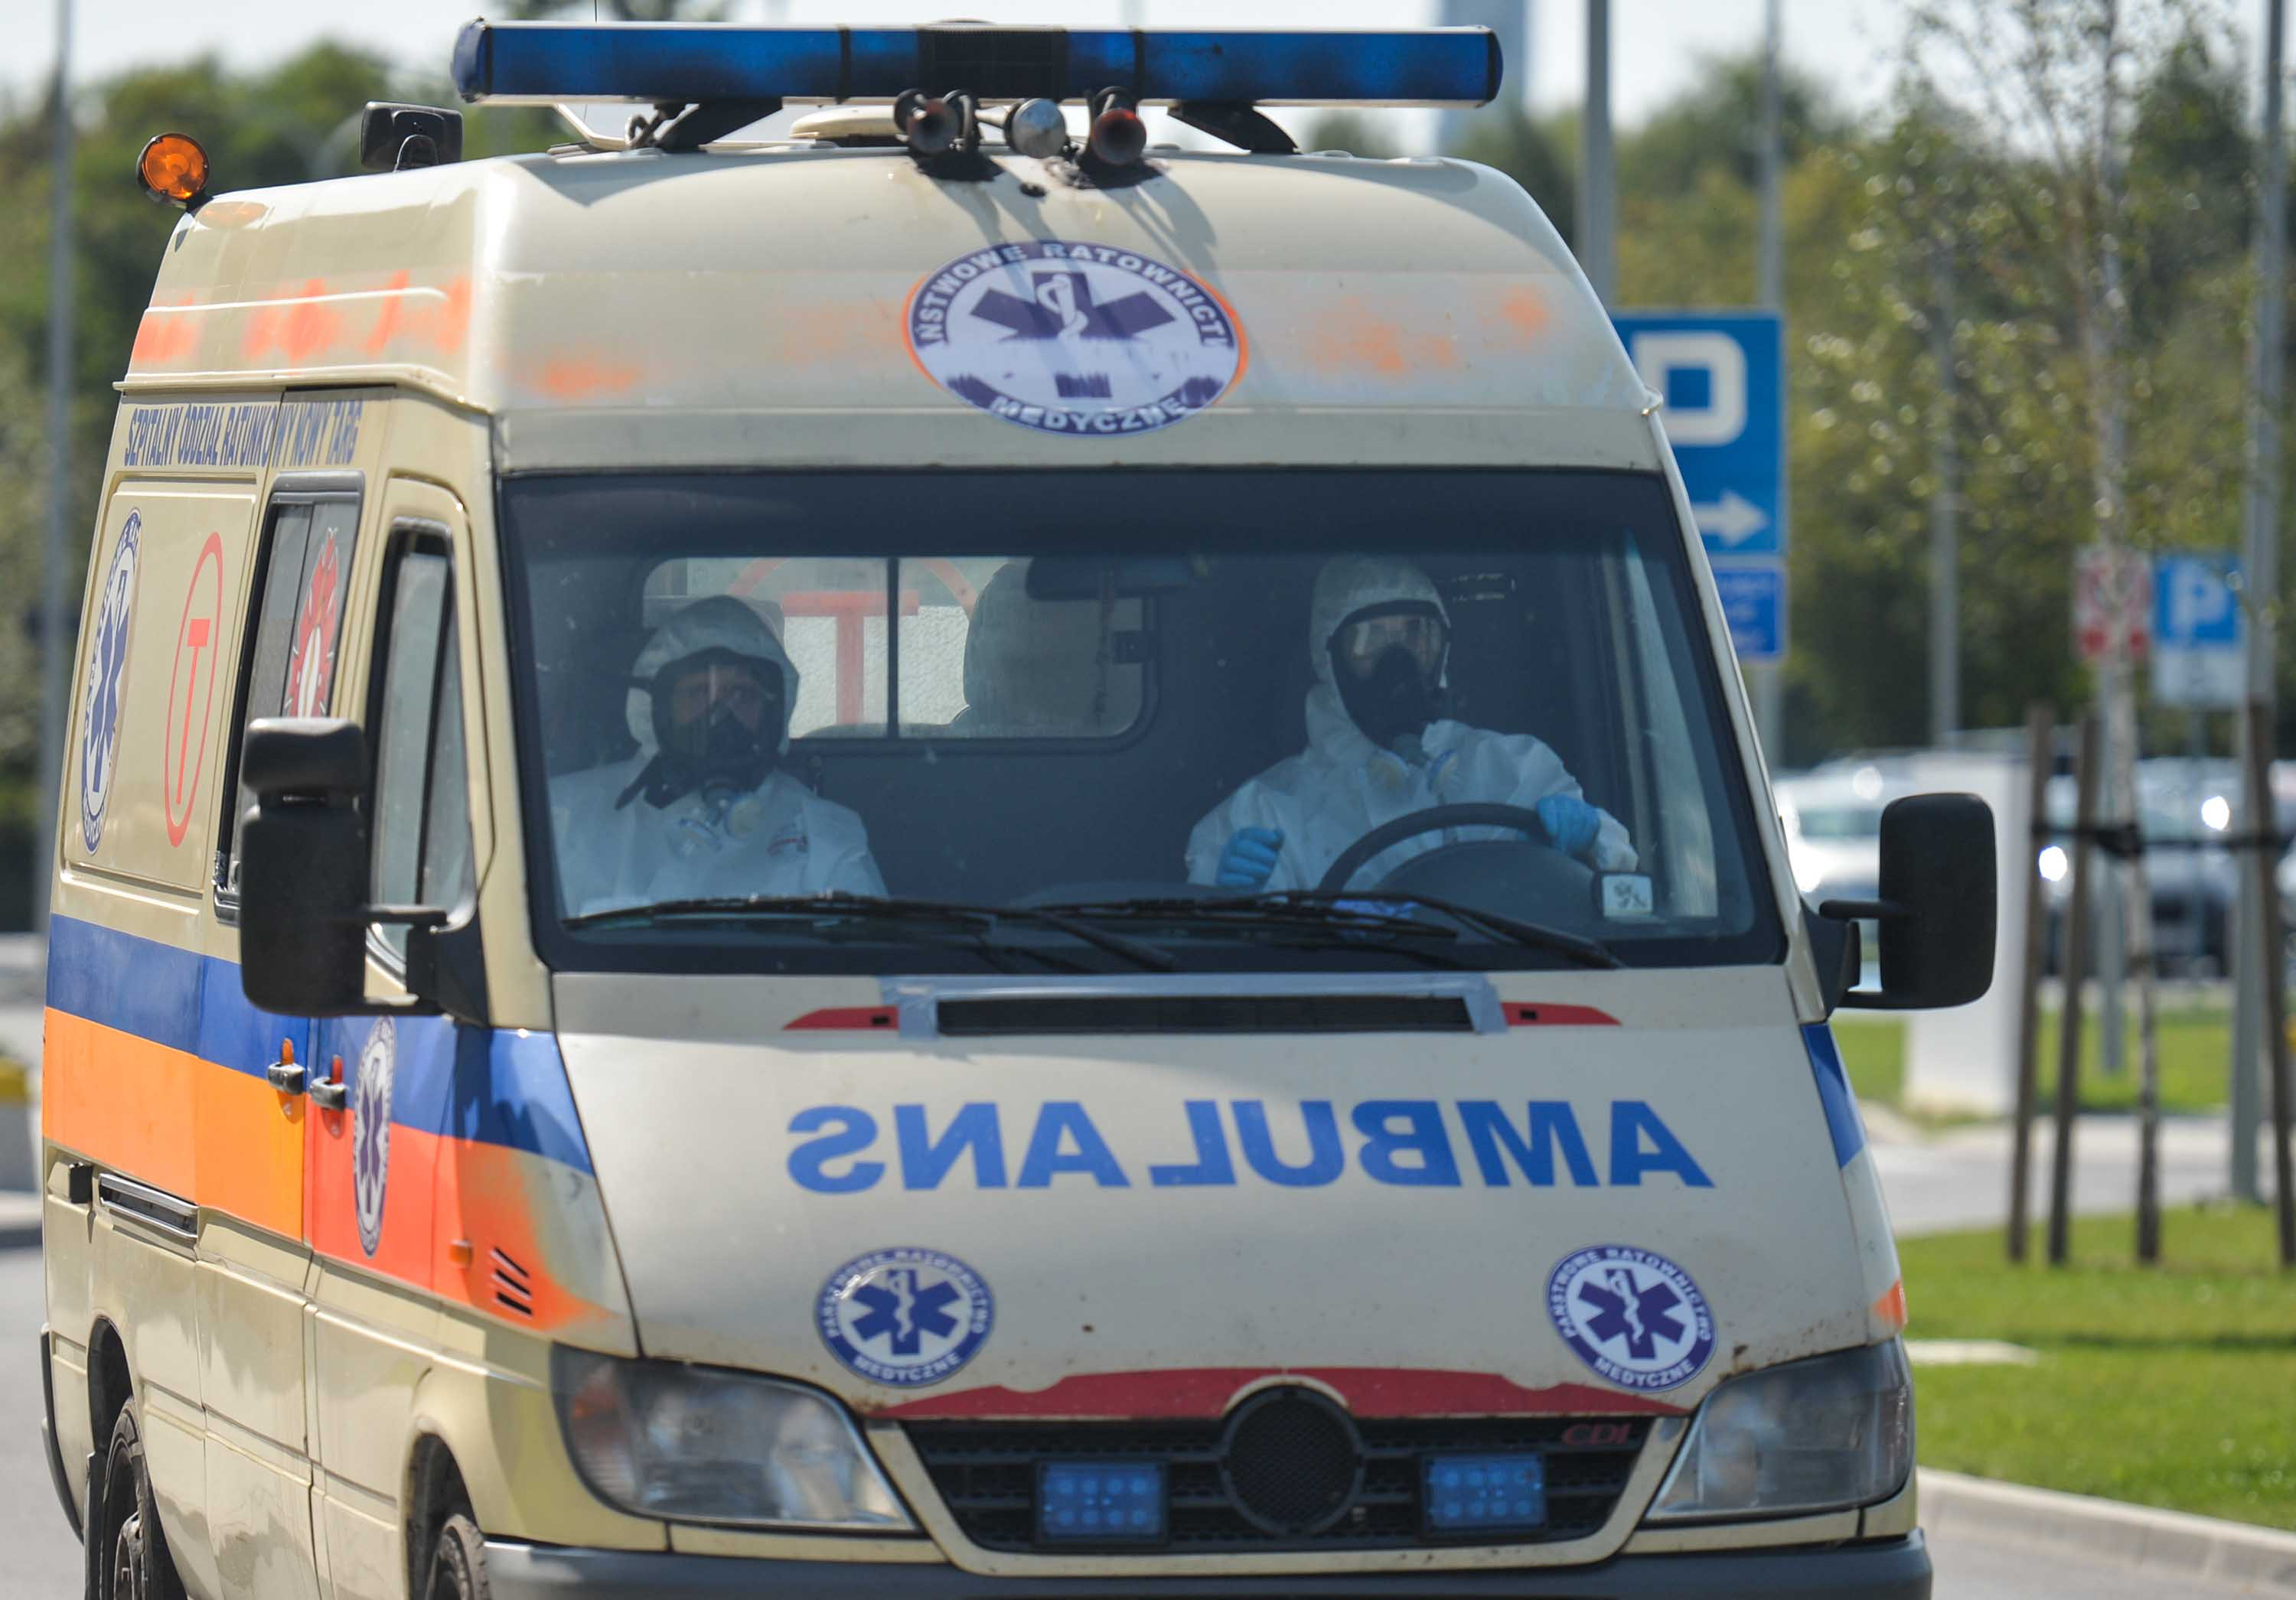 Ambulance medics wearing protective suits are seen in Krakow, Poland on September 21.